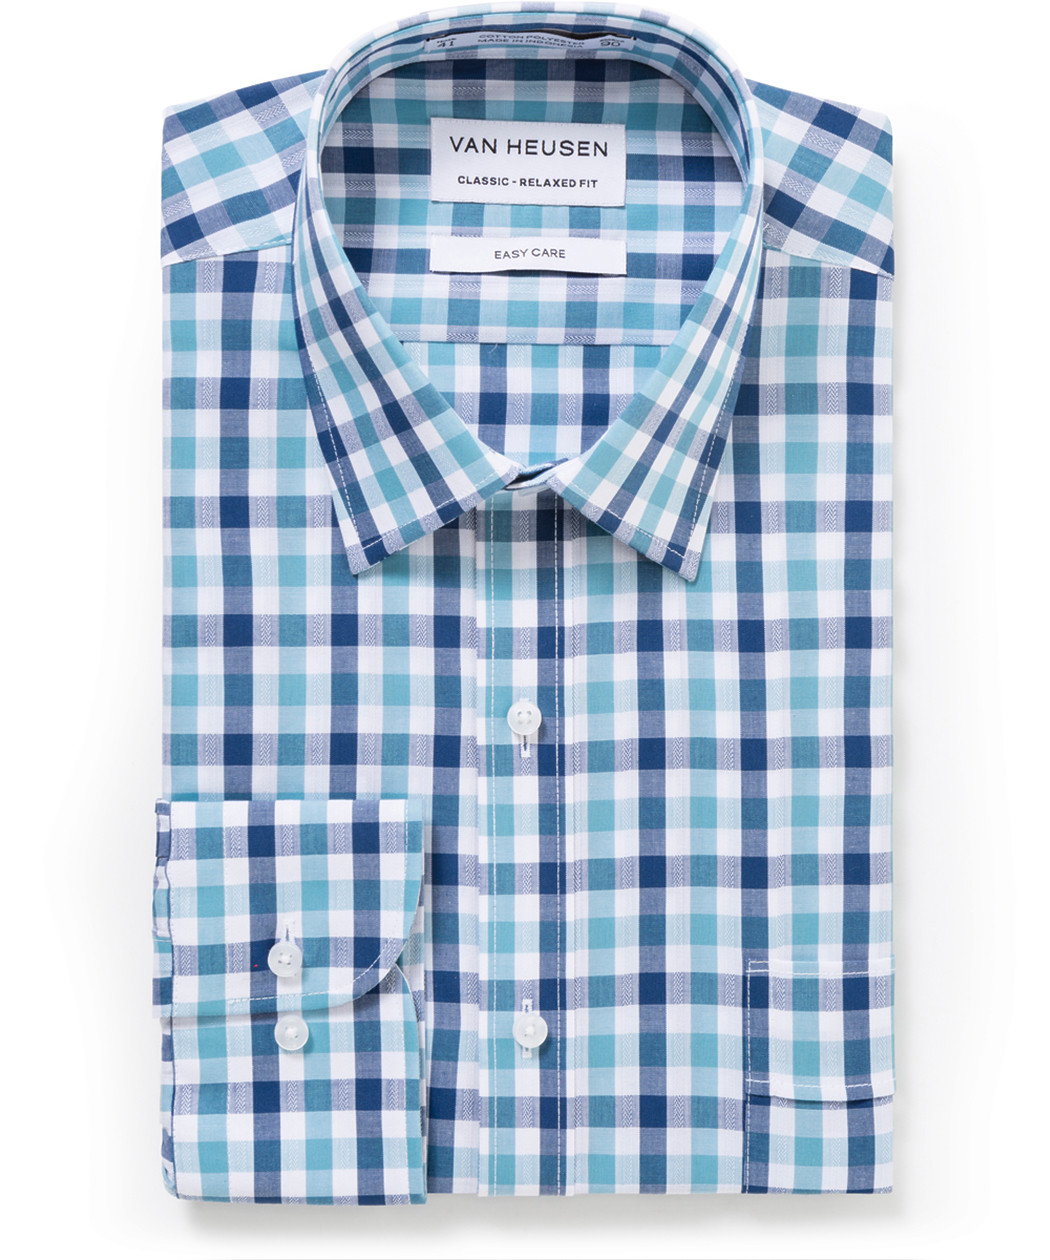 4fcef3c57f8 Van Heusen. Classic Relaxed Fit Shirt Multi Tone Large Check